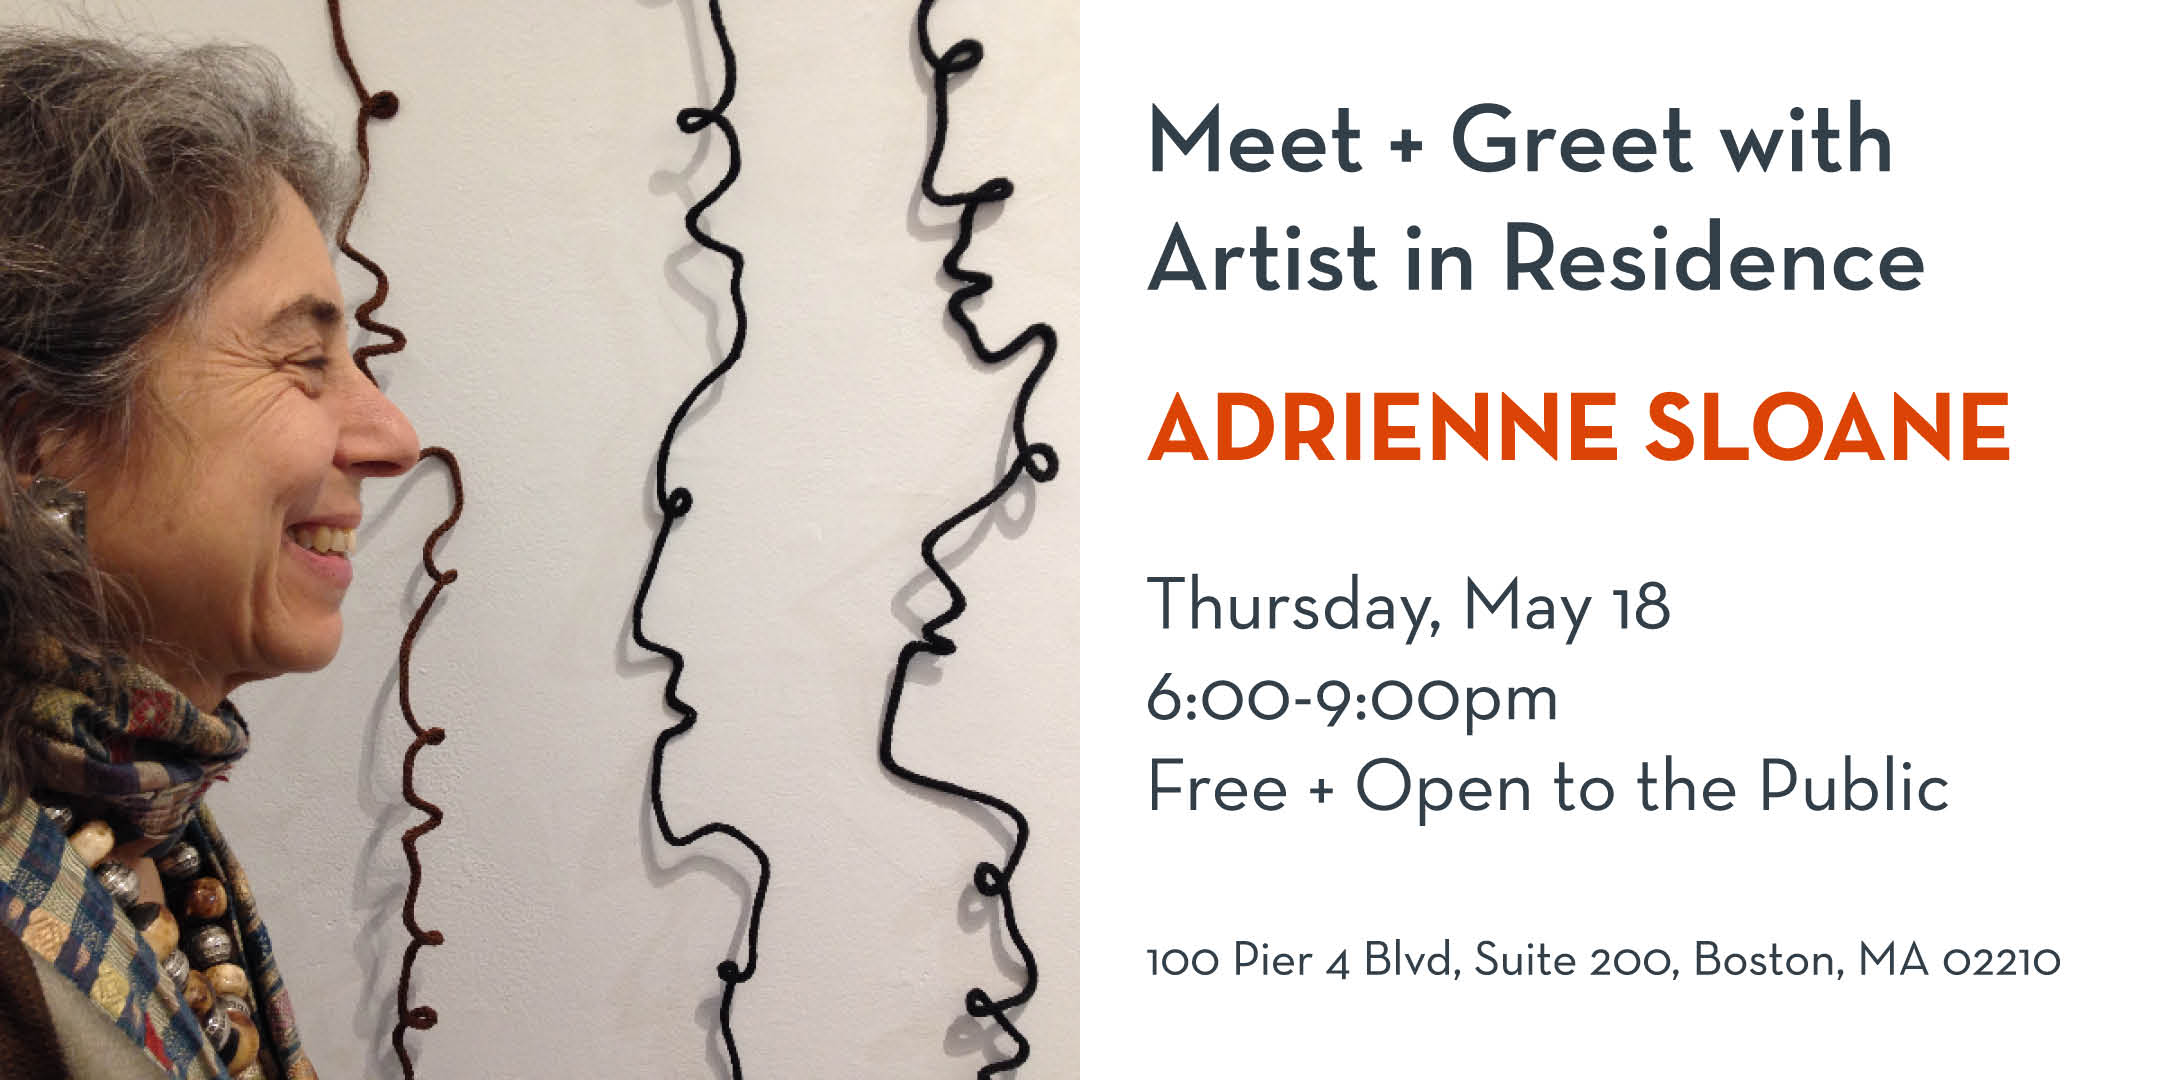 Meet And Greet With Artist In Residence Adrienne Sloane 051817